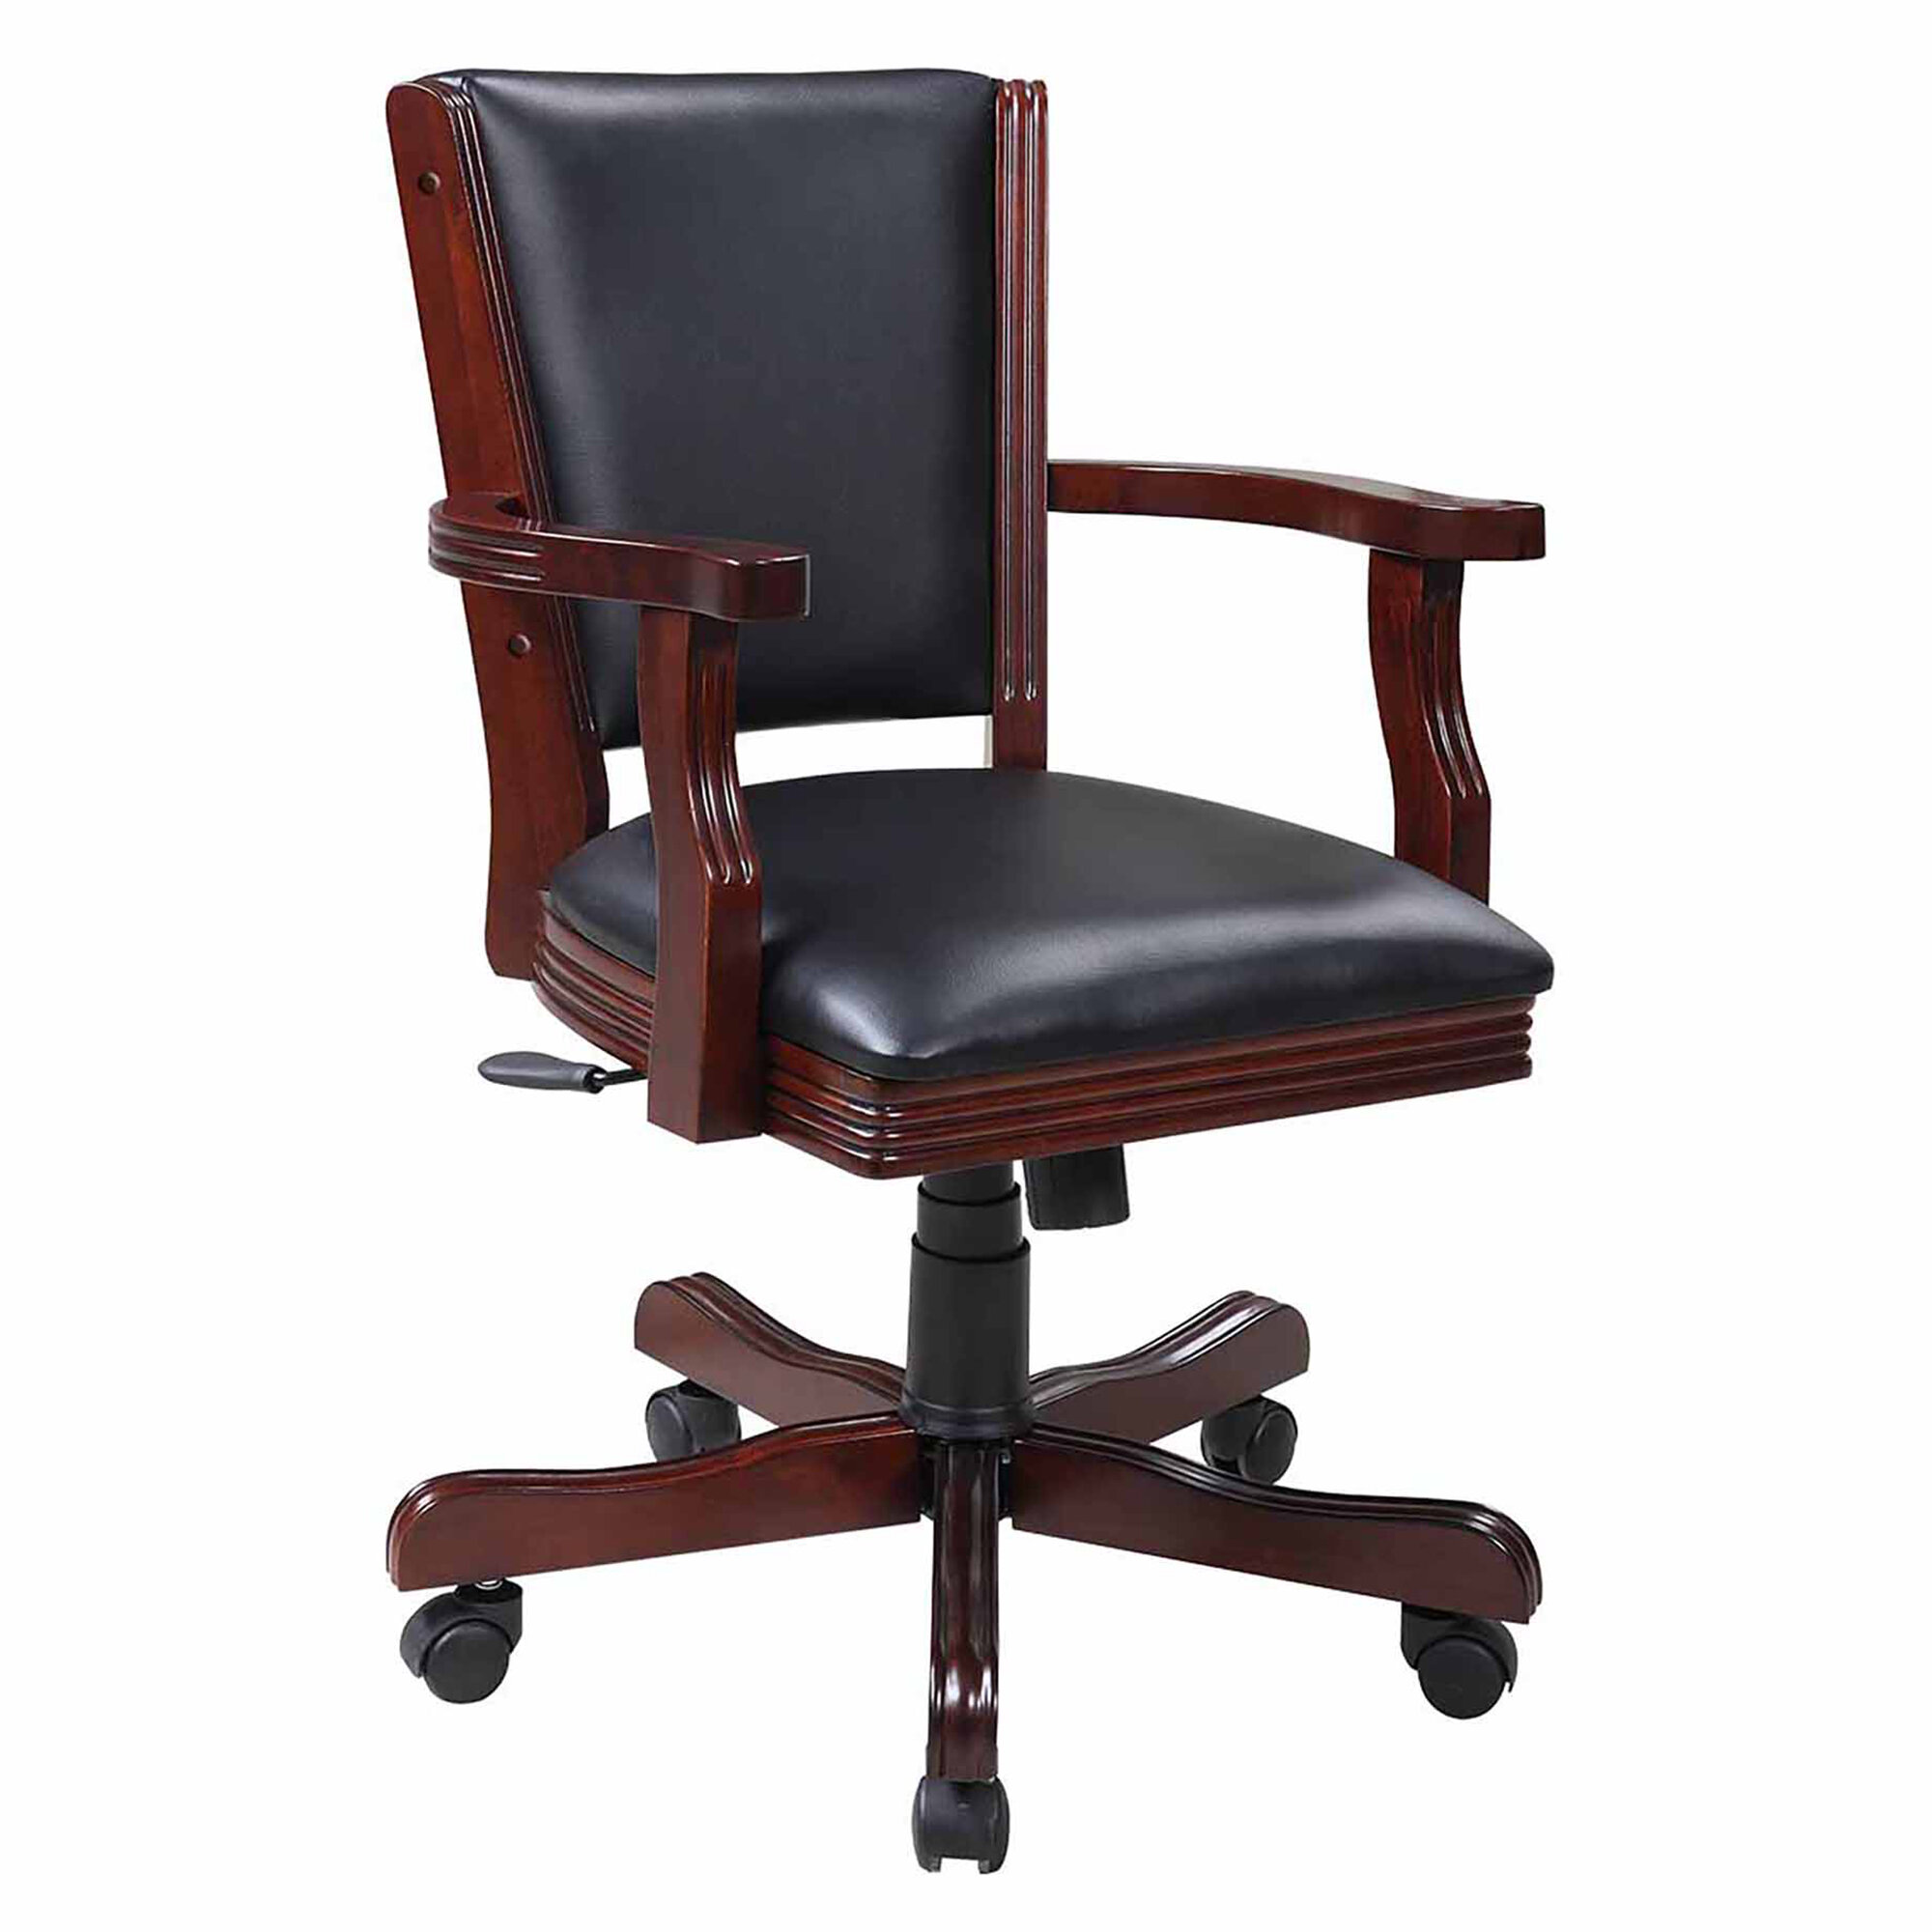 furniture amazon comfort stylish thick designer clean liam office dp upholstered home com porthos height chair padding executive with adjustable for easy walnut